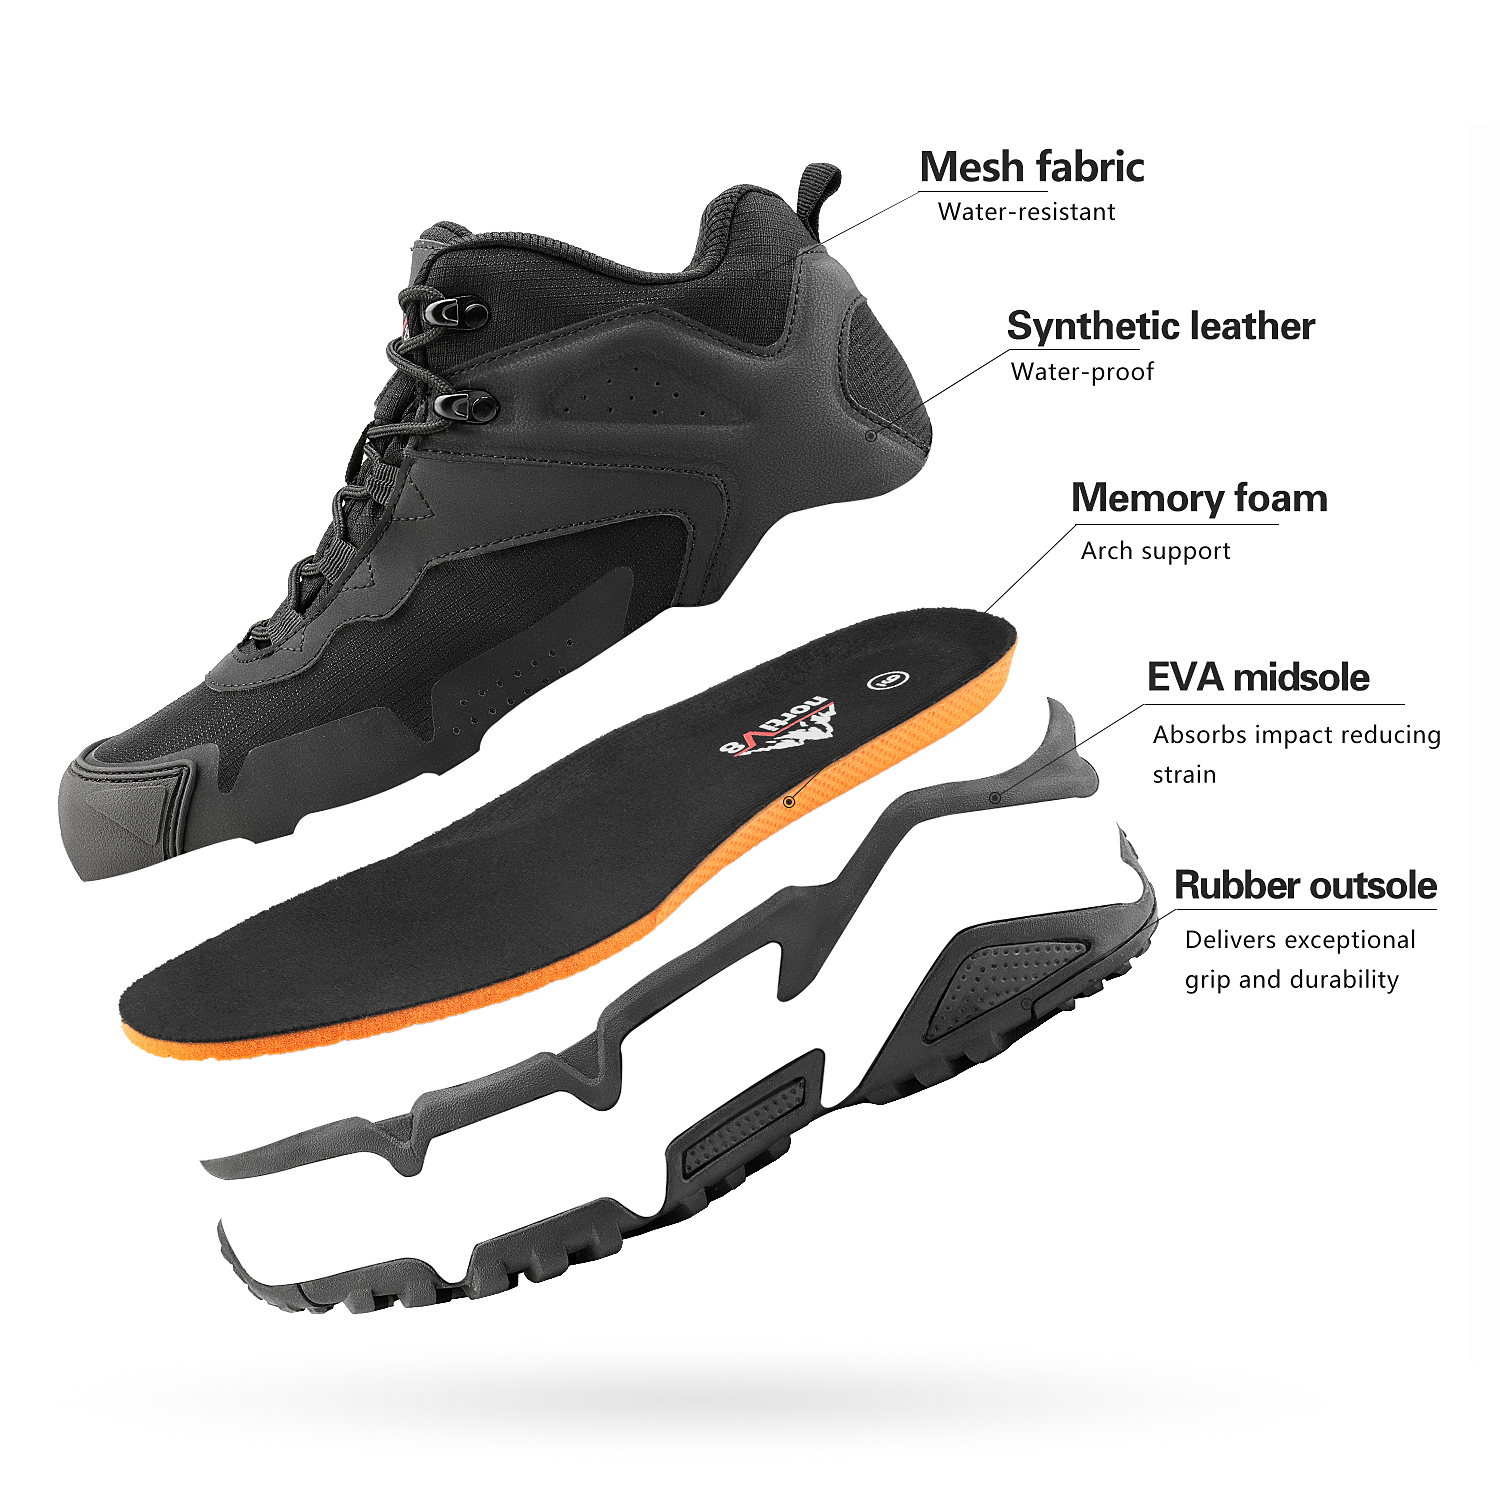 NORTIV-8-Men-039-s-Ankle-Waterproof-Hiking-Boots-Lightweight-Backpacking-Work-Shoes thumbnail 23